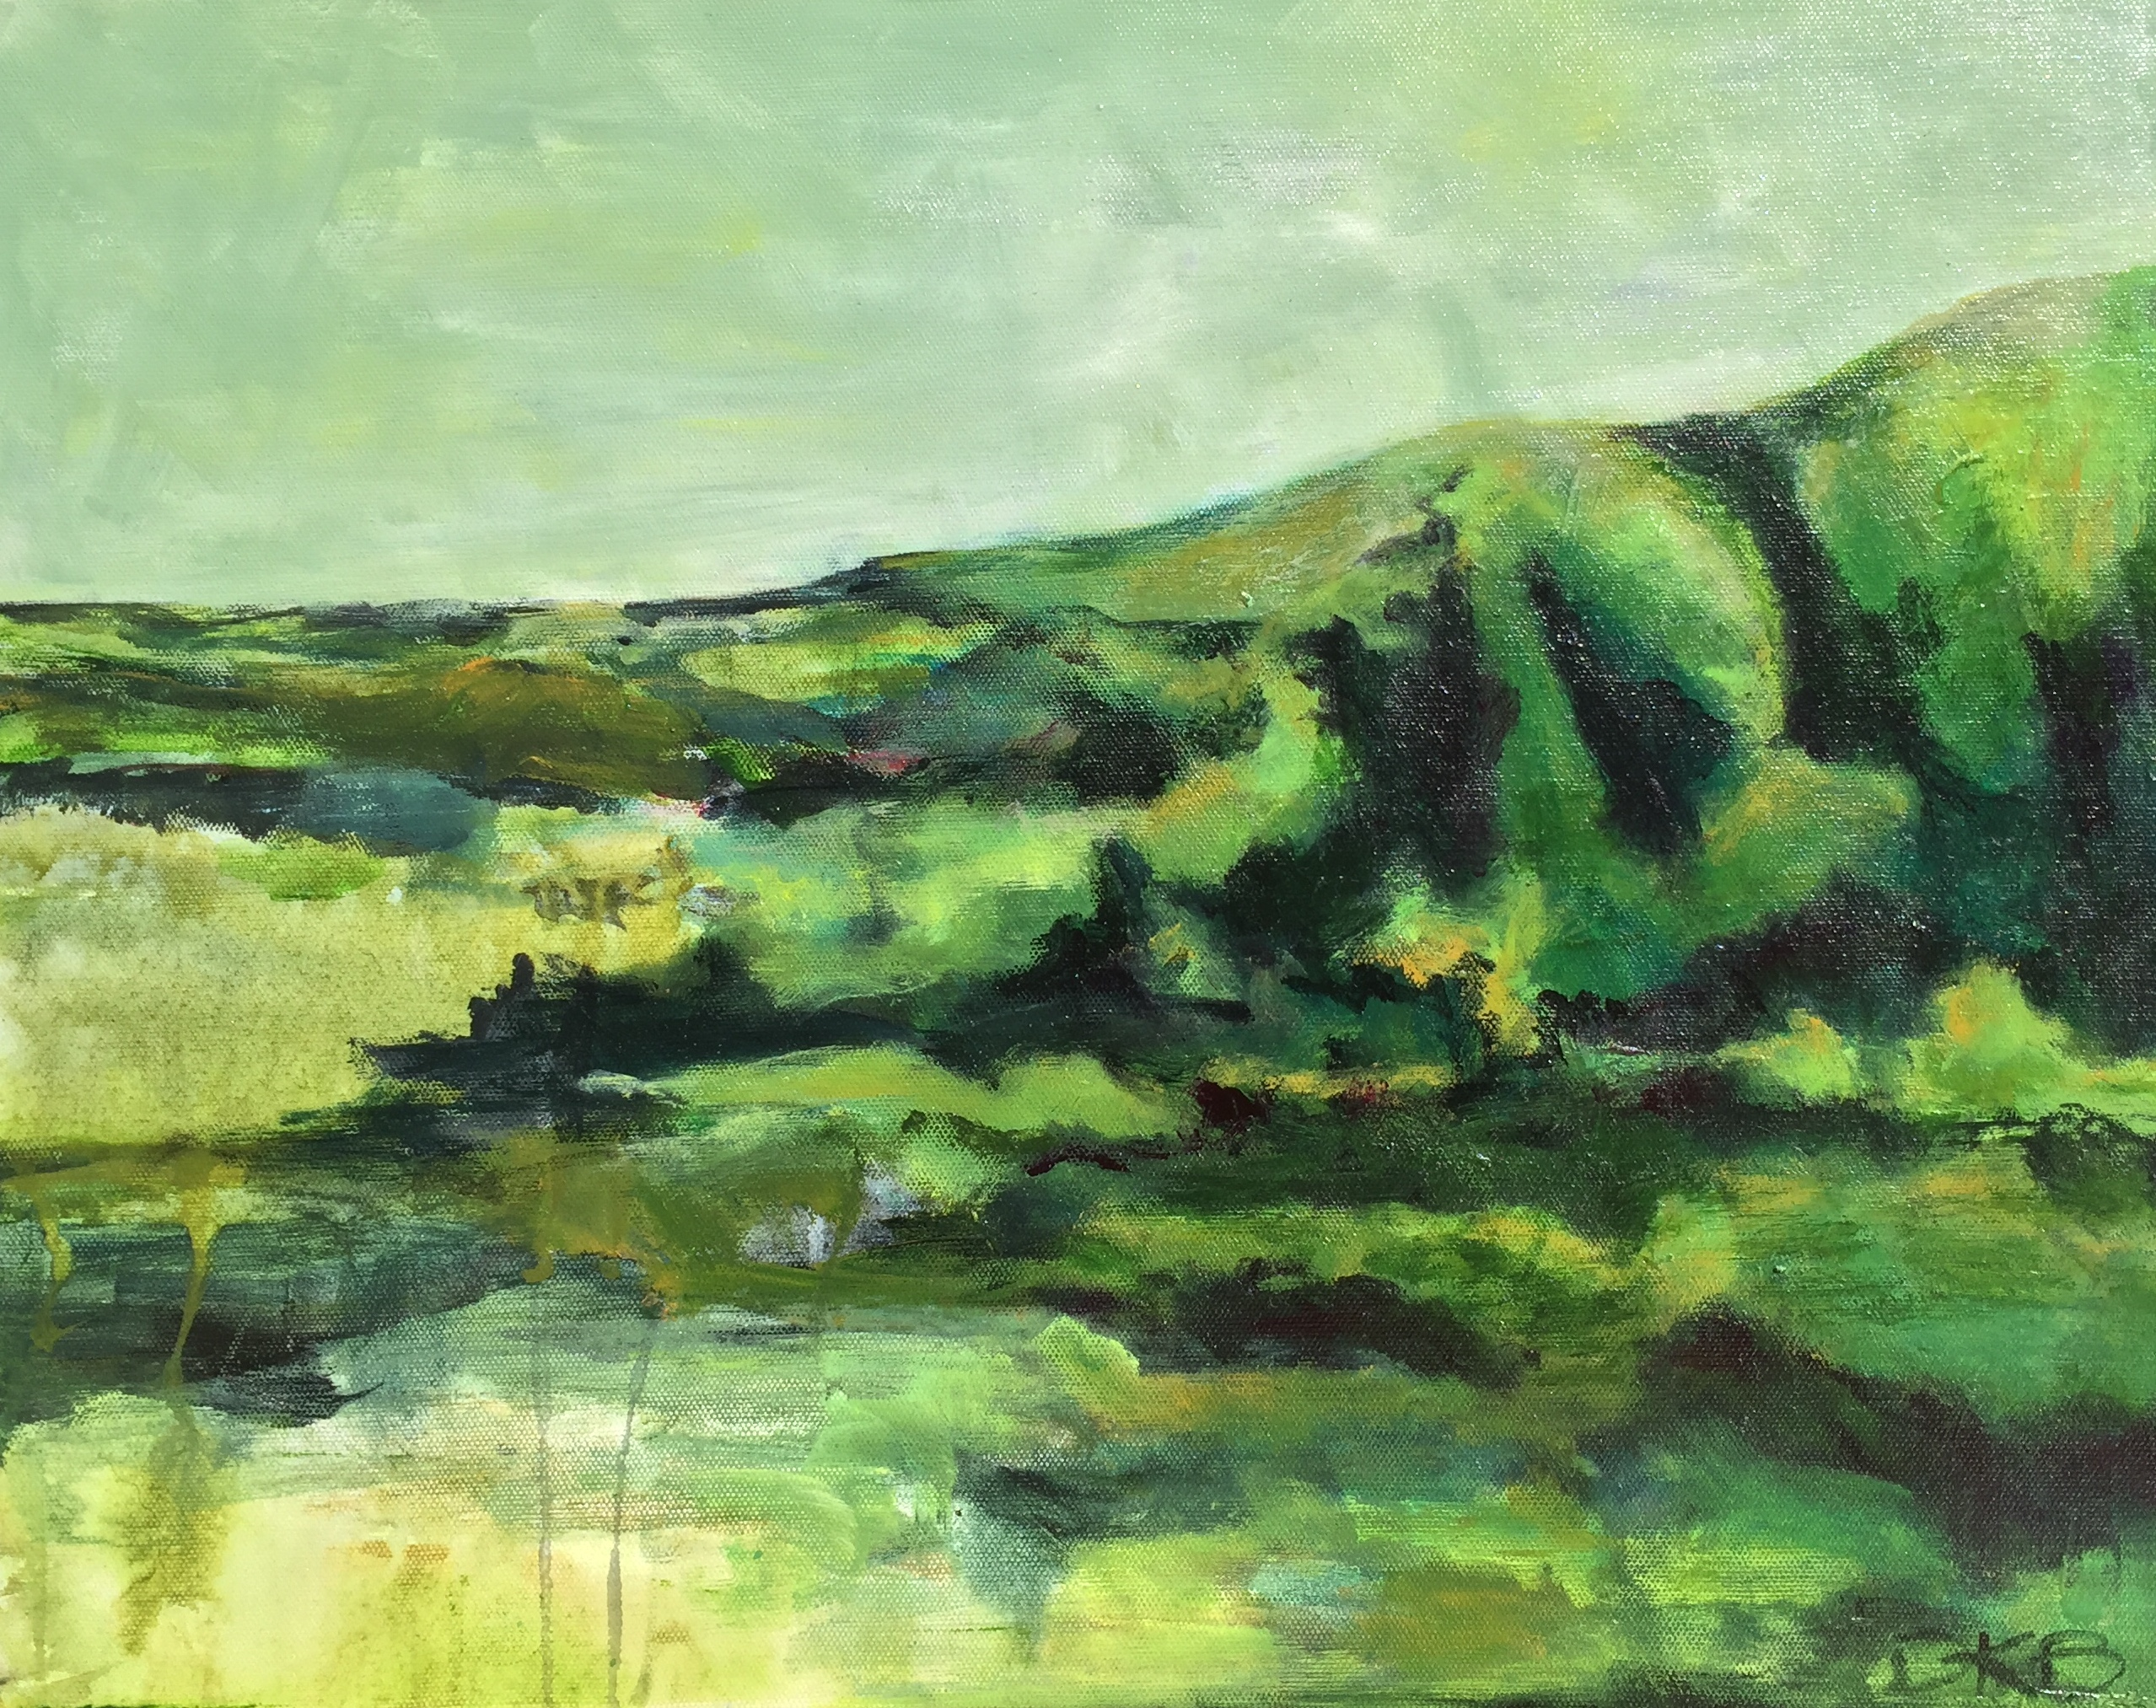 Aongatete Valley 2  Acrylic on Canvas 400mm x 510mm  $395